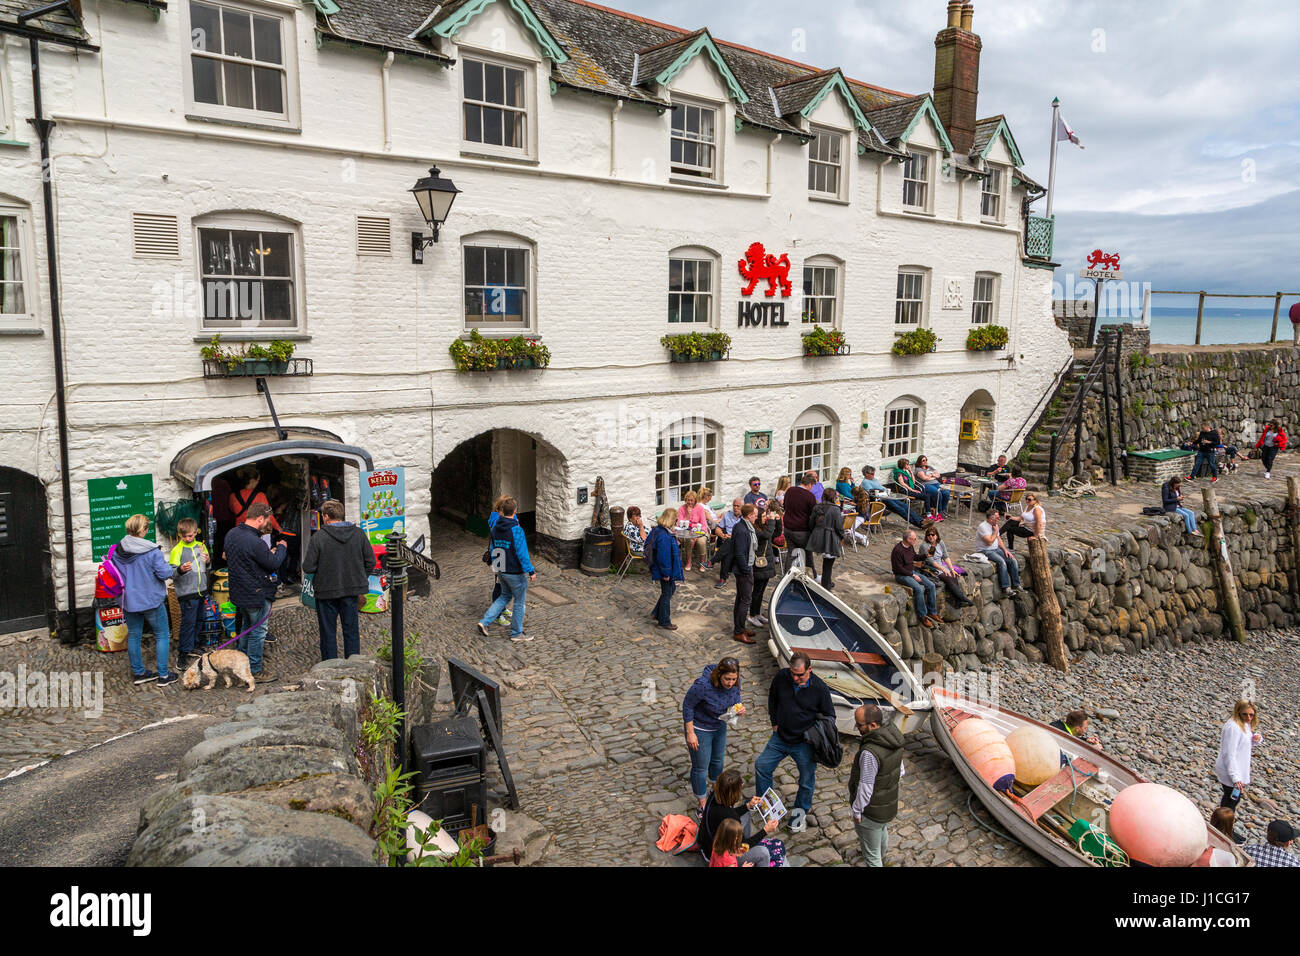 The Red Lion Hotel, Hartland Devon Heritage Coast,The Quay,North Devon,UK,England. A area of outstanding natural - Stock Image